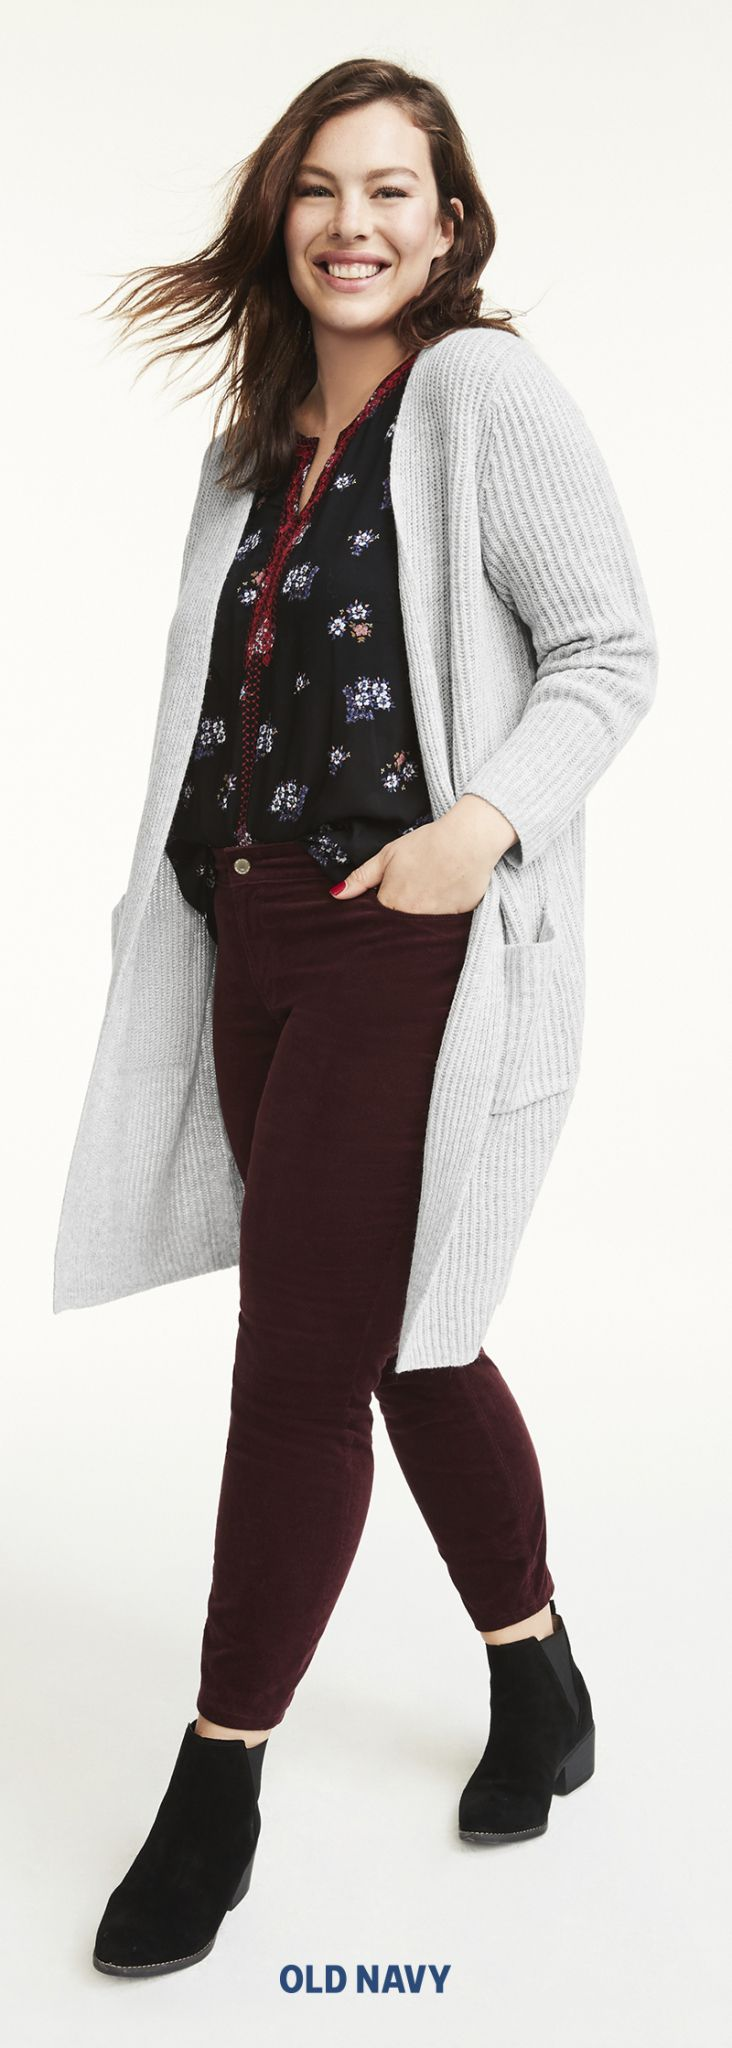 Play up a romantic dark-floral print by choosing a pair of Rockstar jeans in the same color family. Nothing feels more autumnal than this rich garnet shade that can *almost* be considered a neutral.